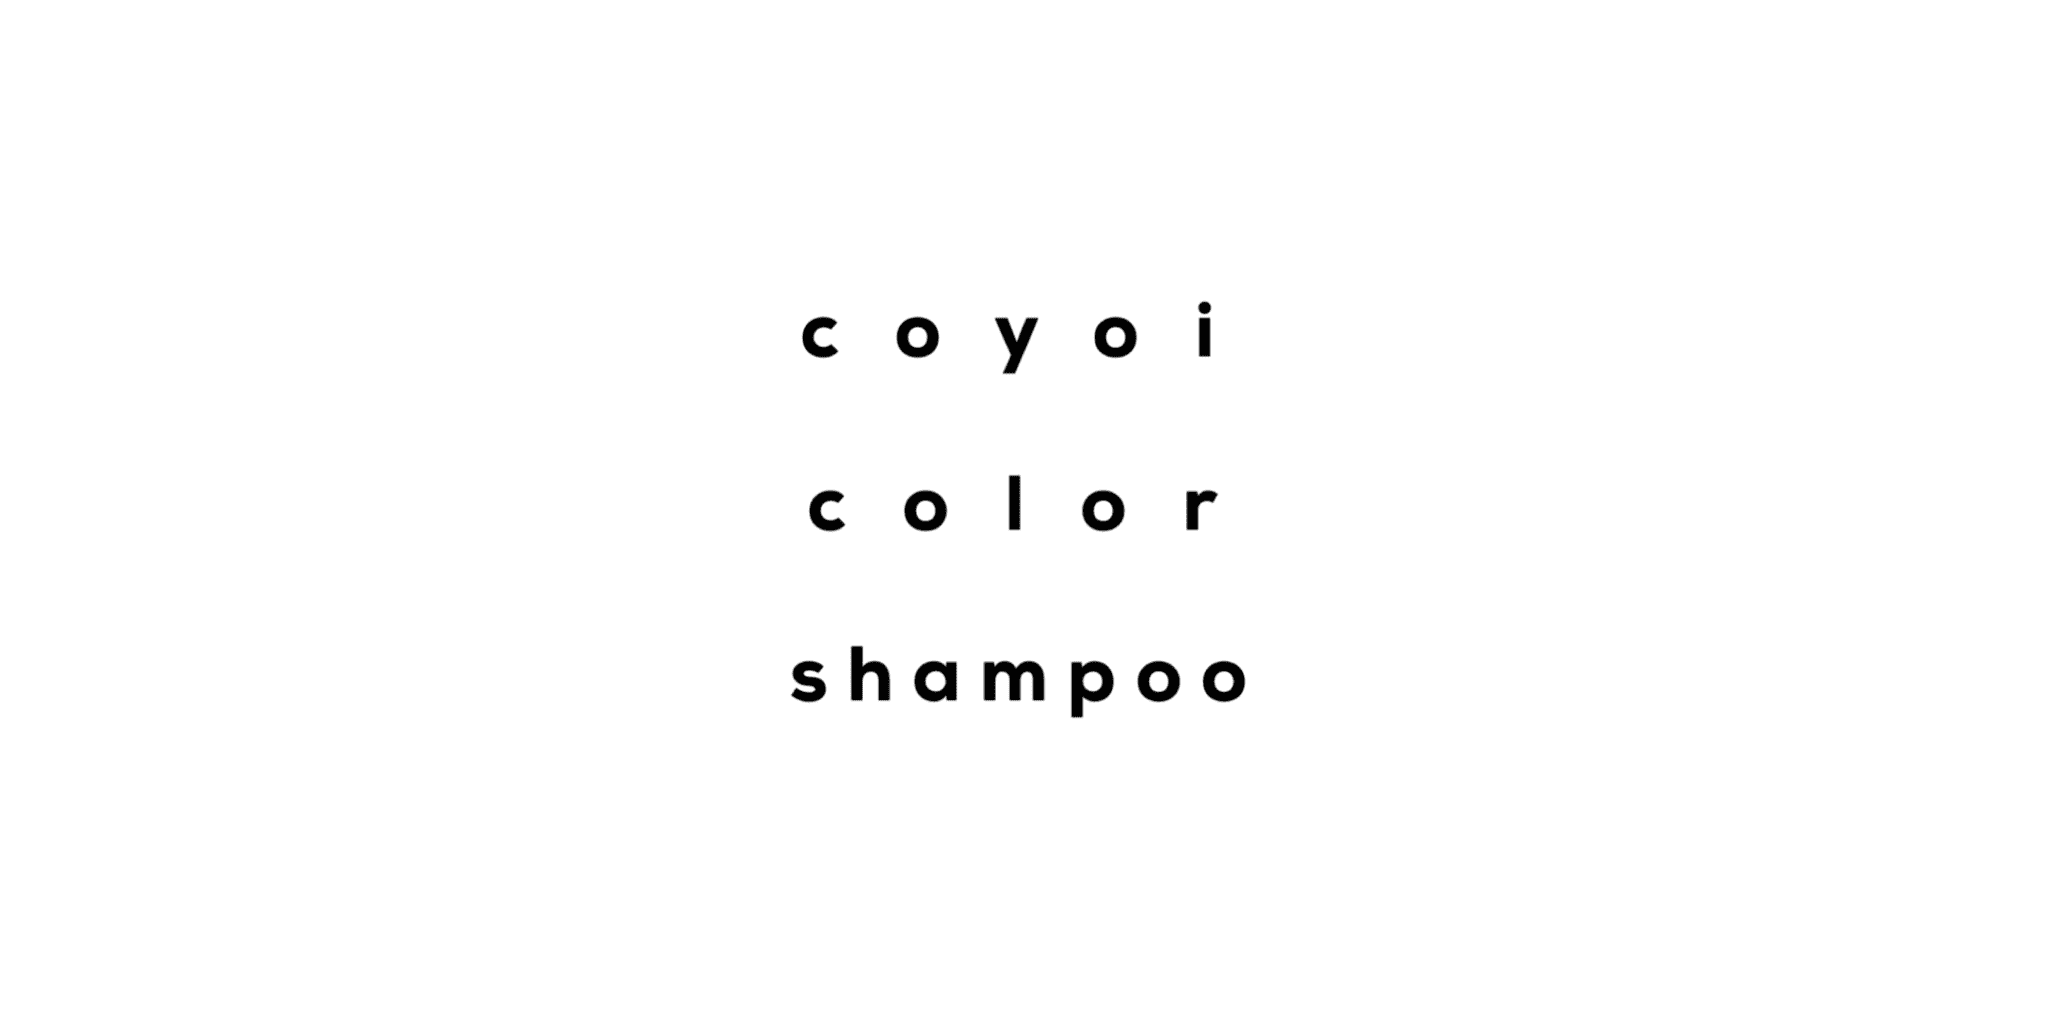 coyoi color shampoo/coyoi color treatment 発売しました!【吉祥寺の美容室coyoi】